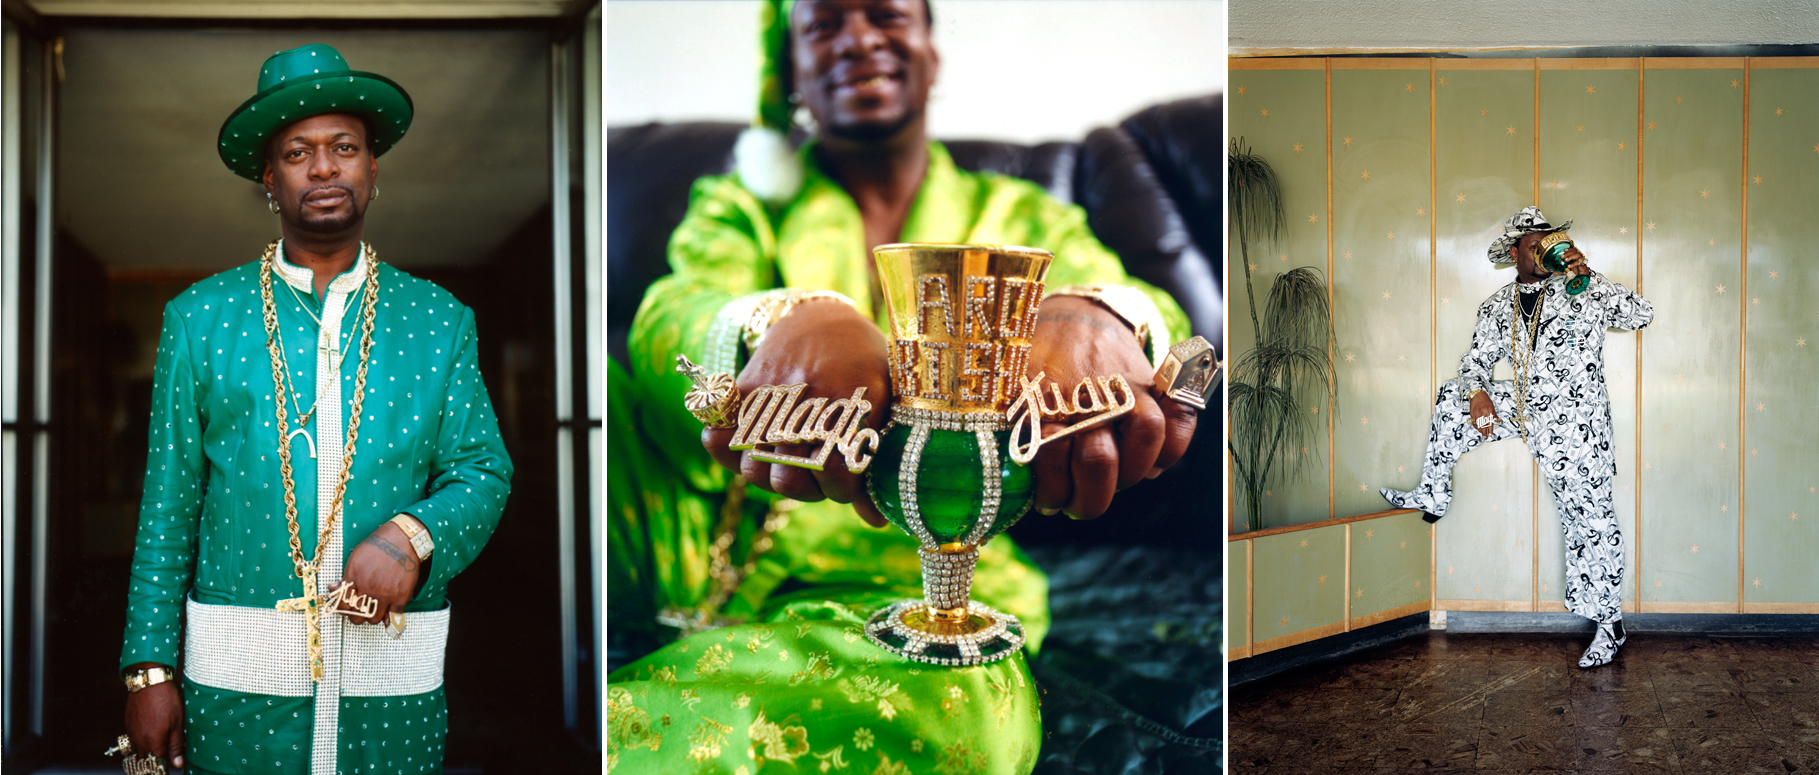 Bishop Don Magic Juan Superradnow